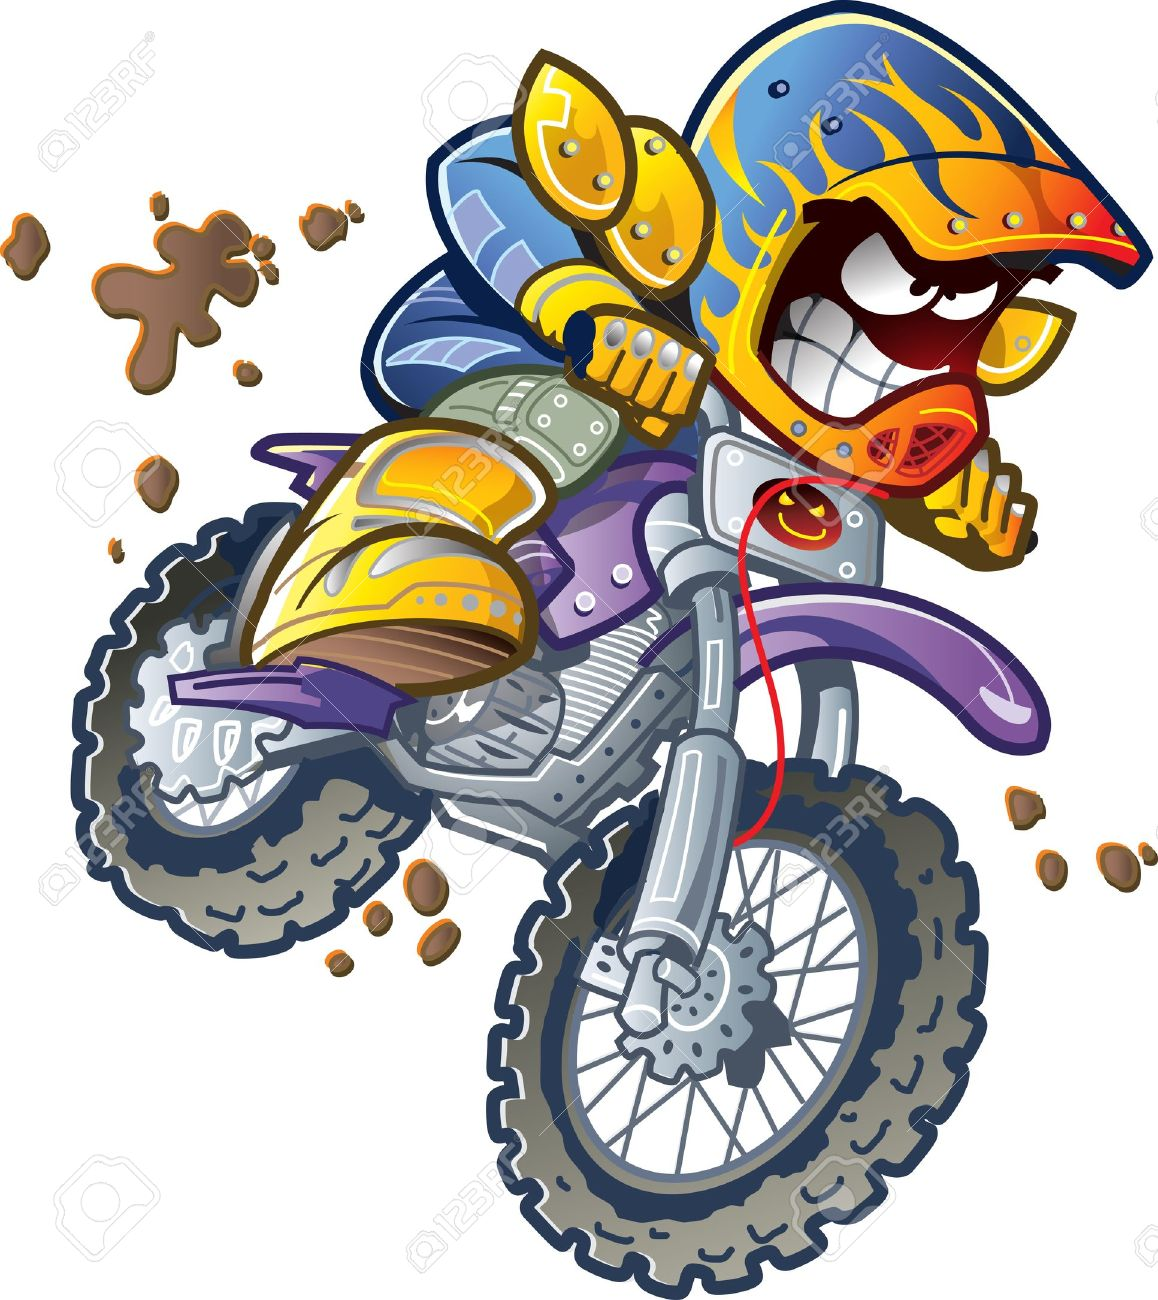 6,583 Motocross Stock Vector Illustration And Royalty Free.